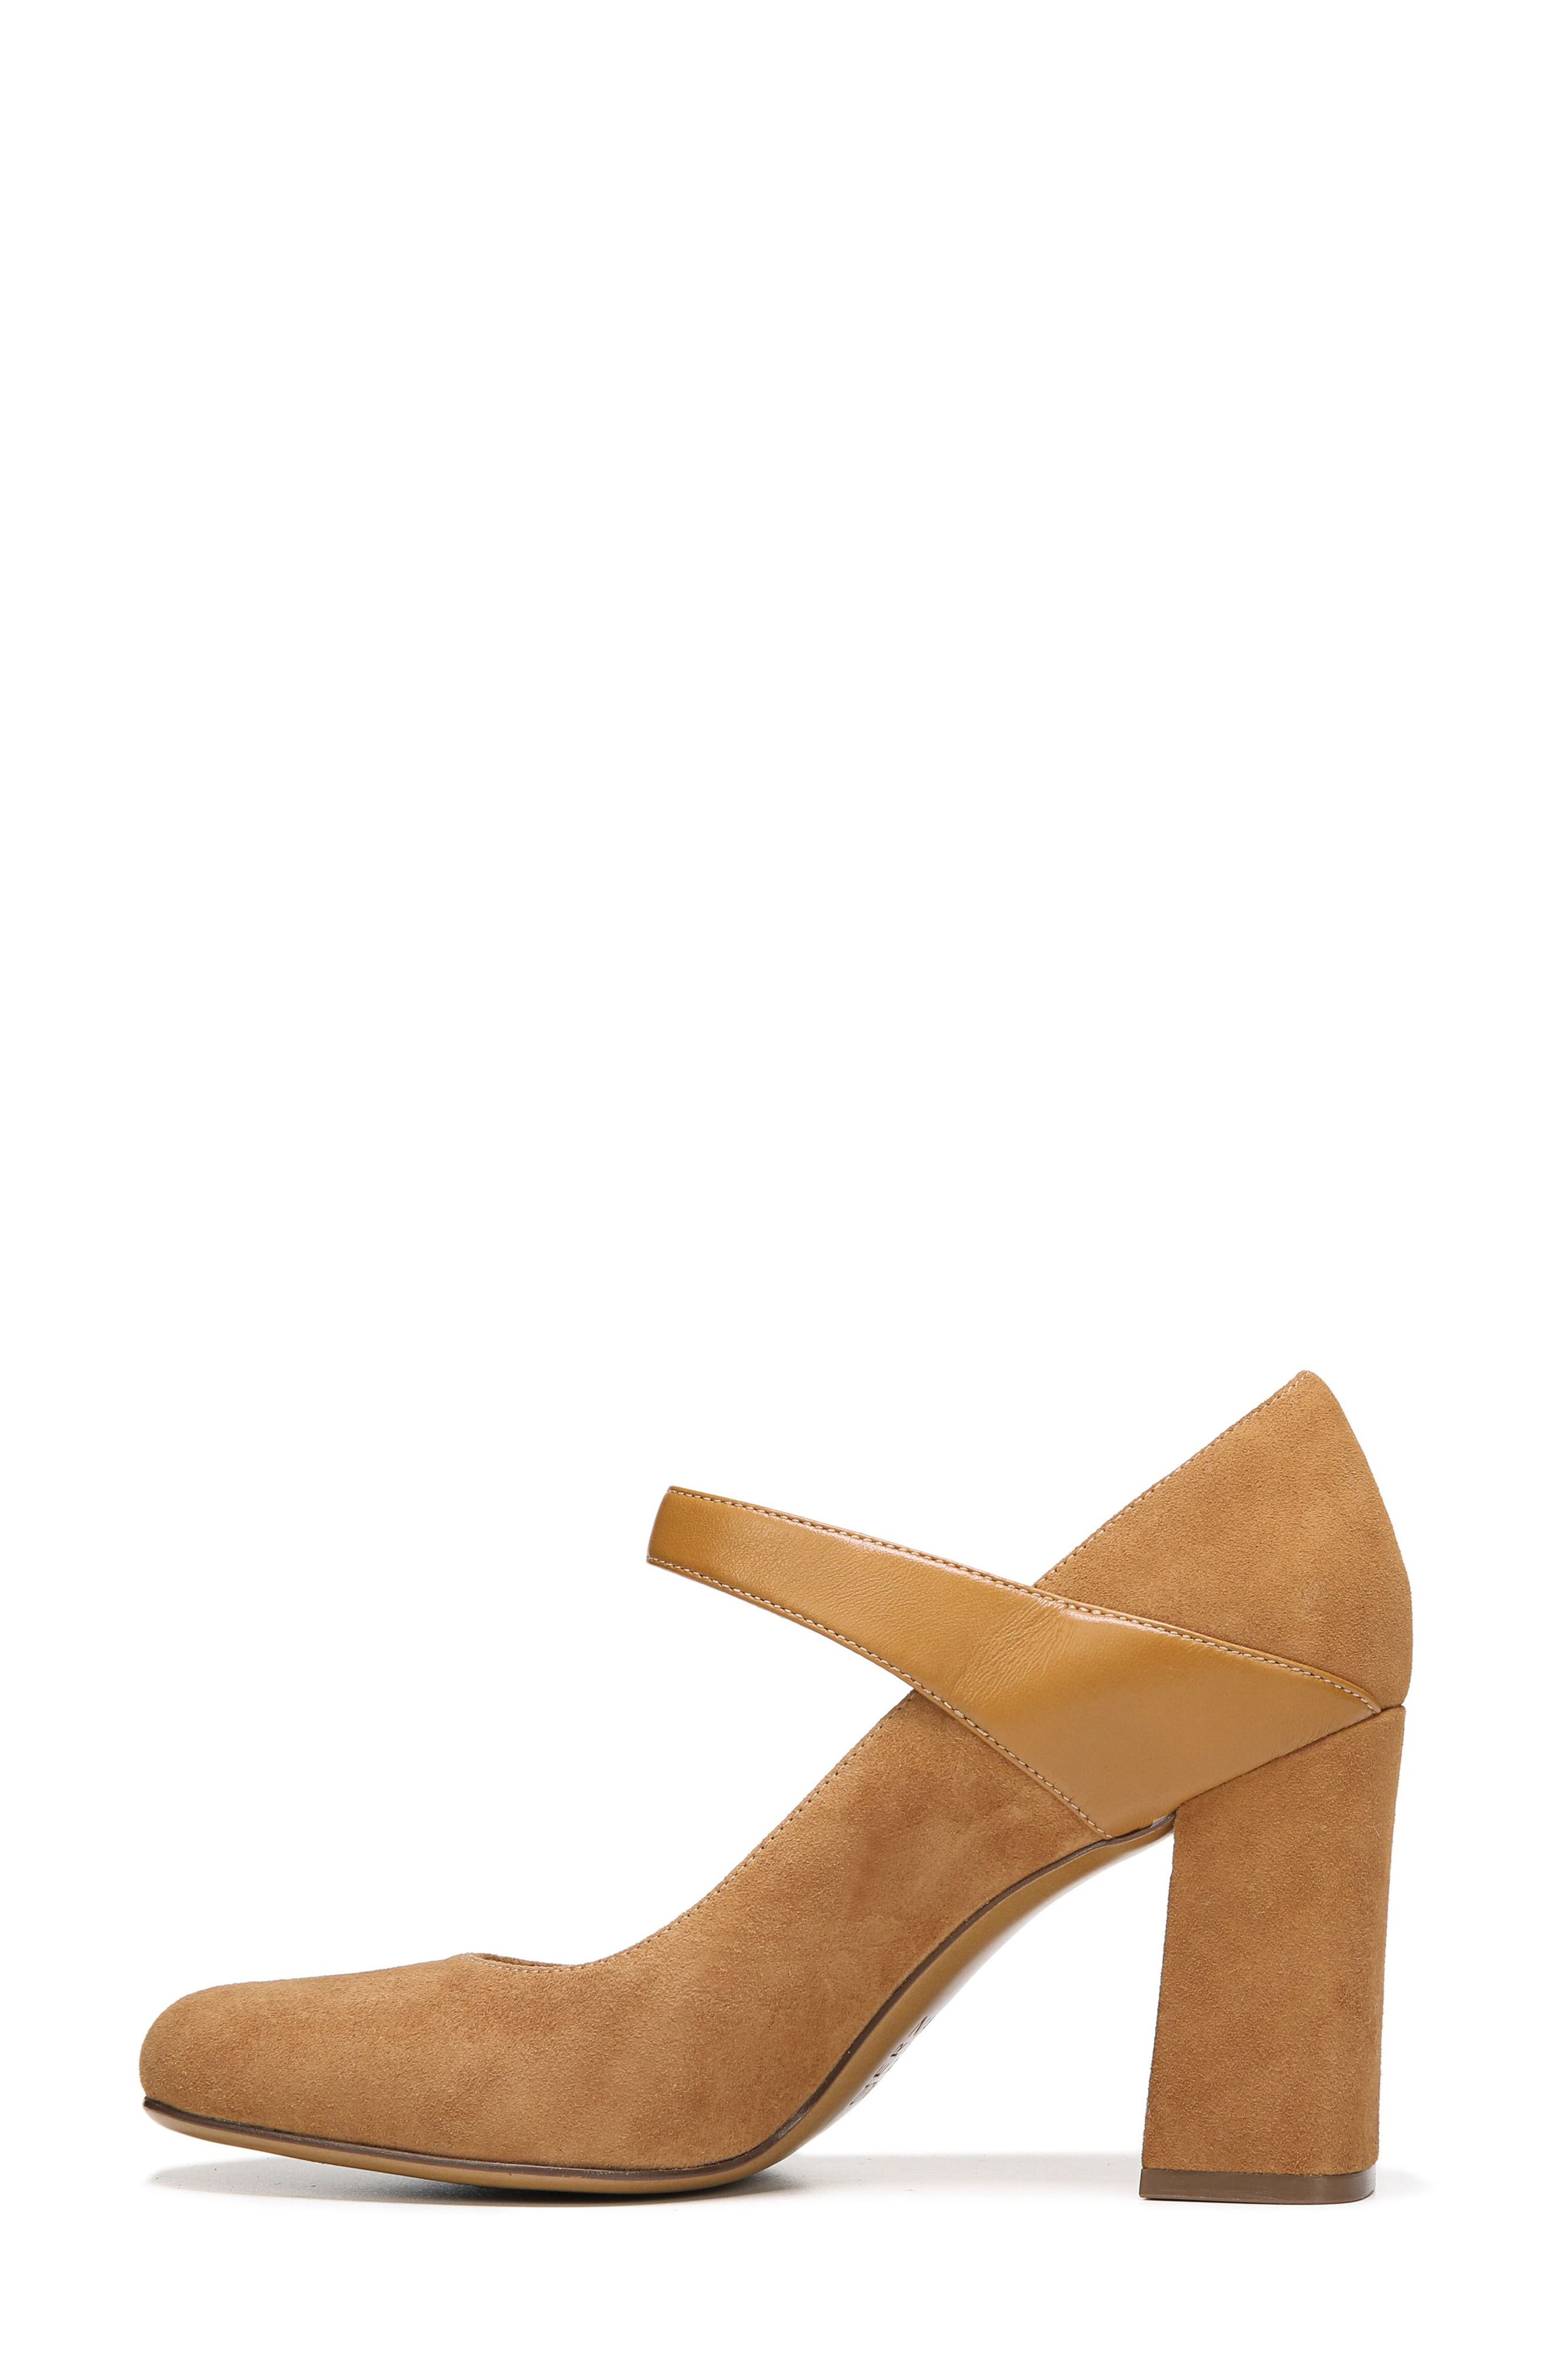 Reva Mary Jane Pump,                             Alternate thumbnail 2, color,                             Camelot Suede